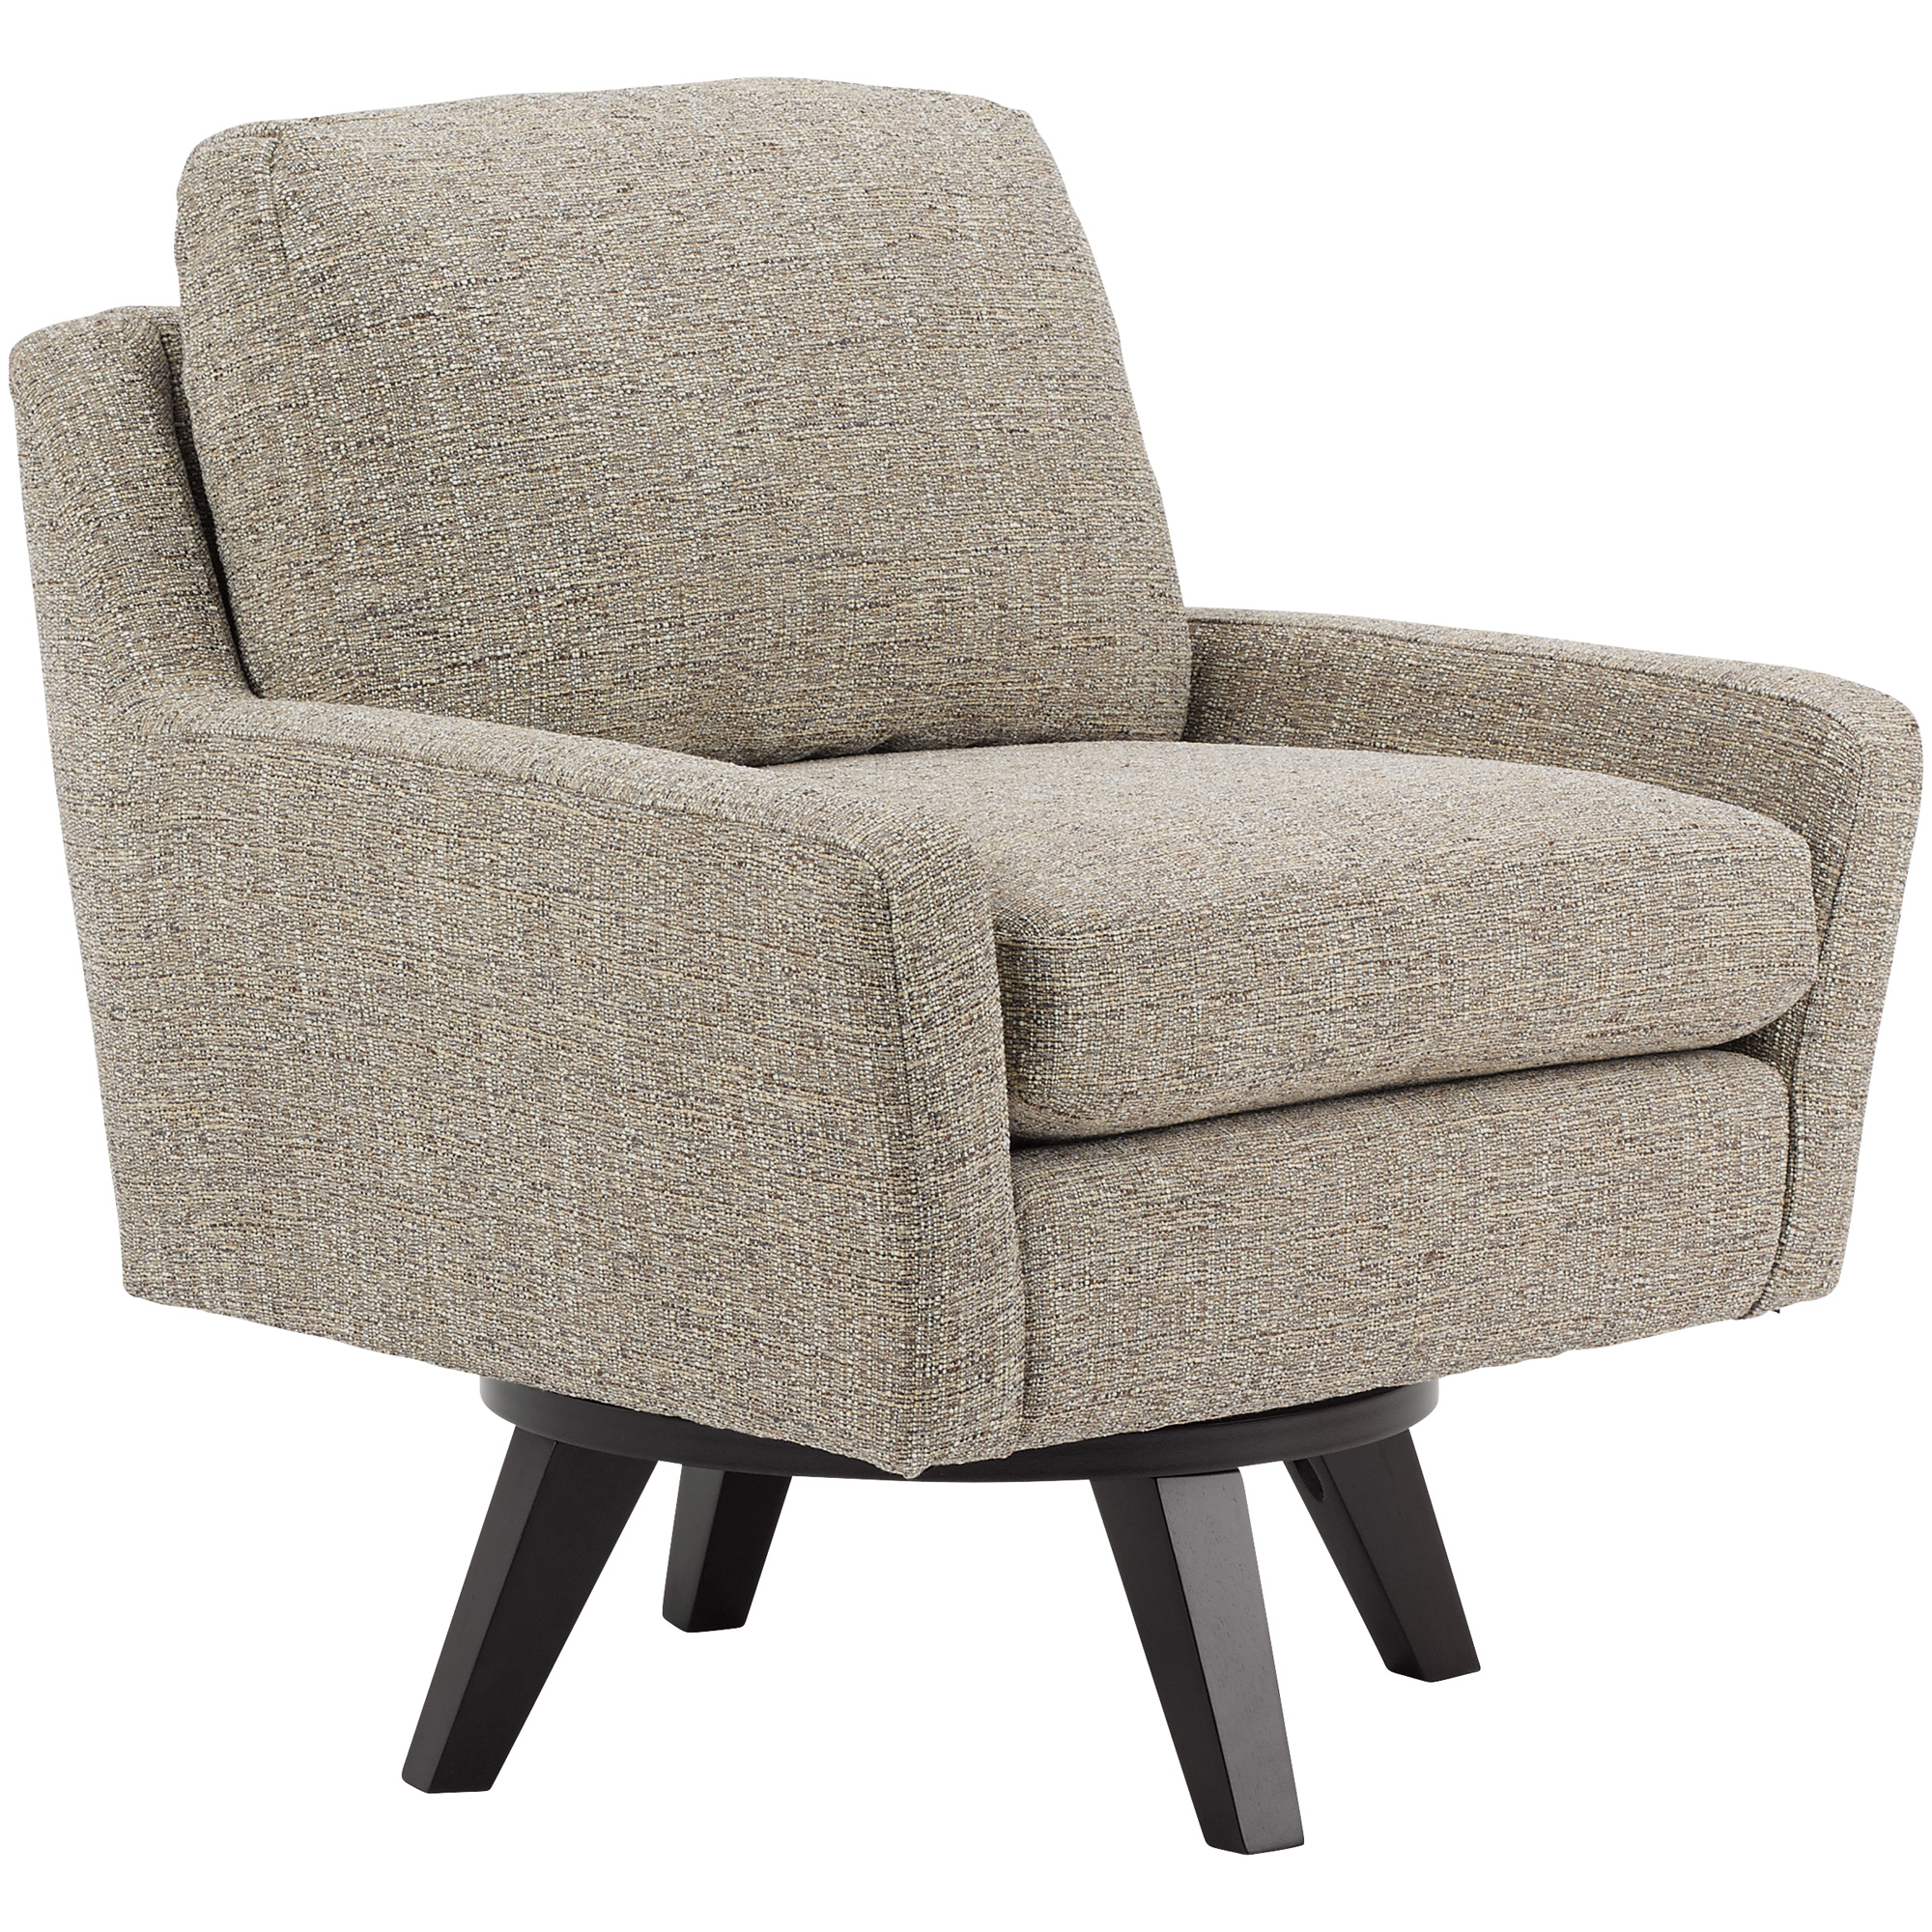 Best Home Furnishings | Seymour Sparrow Swivel Accent Chair